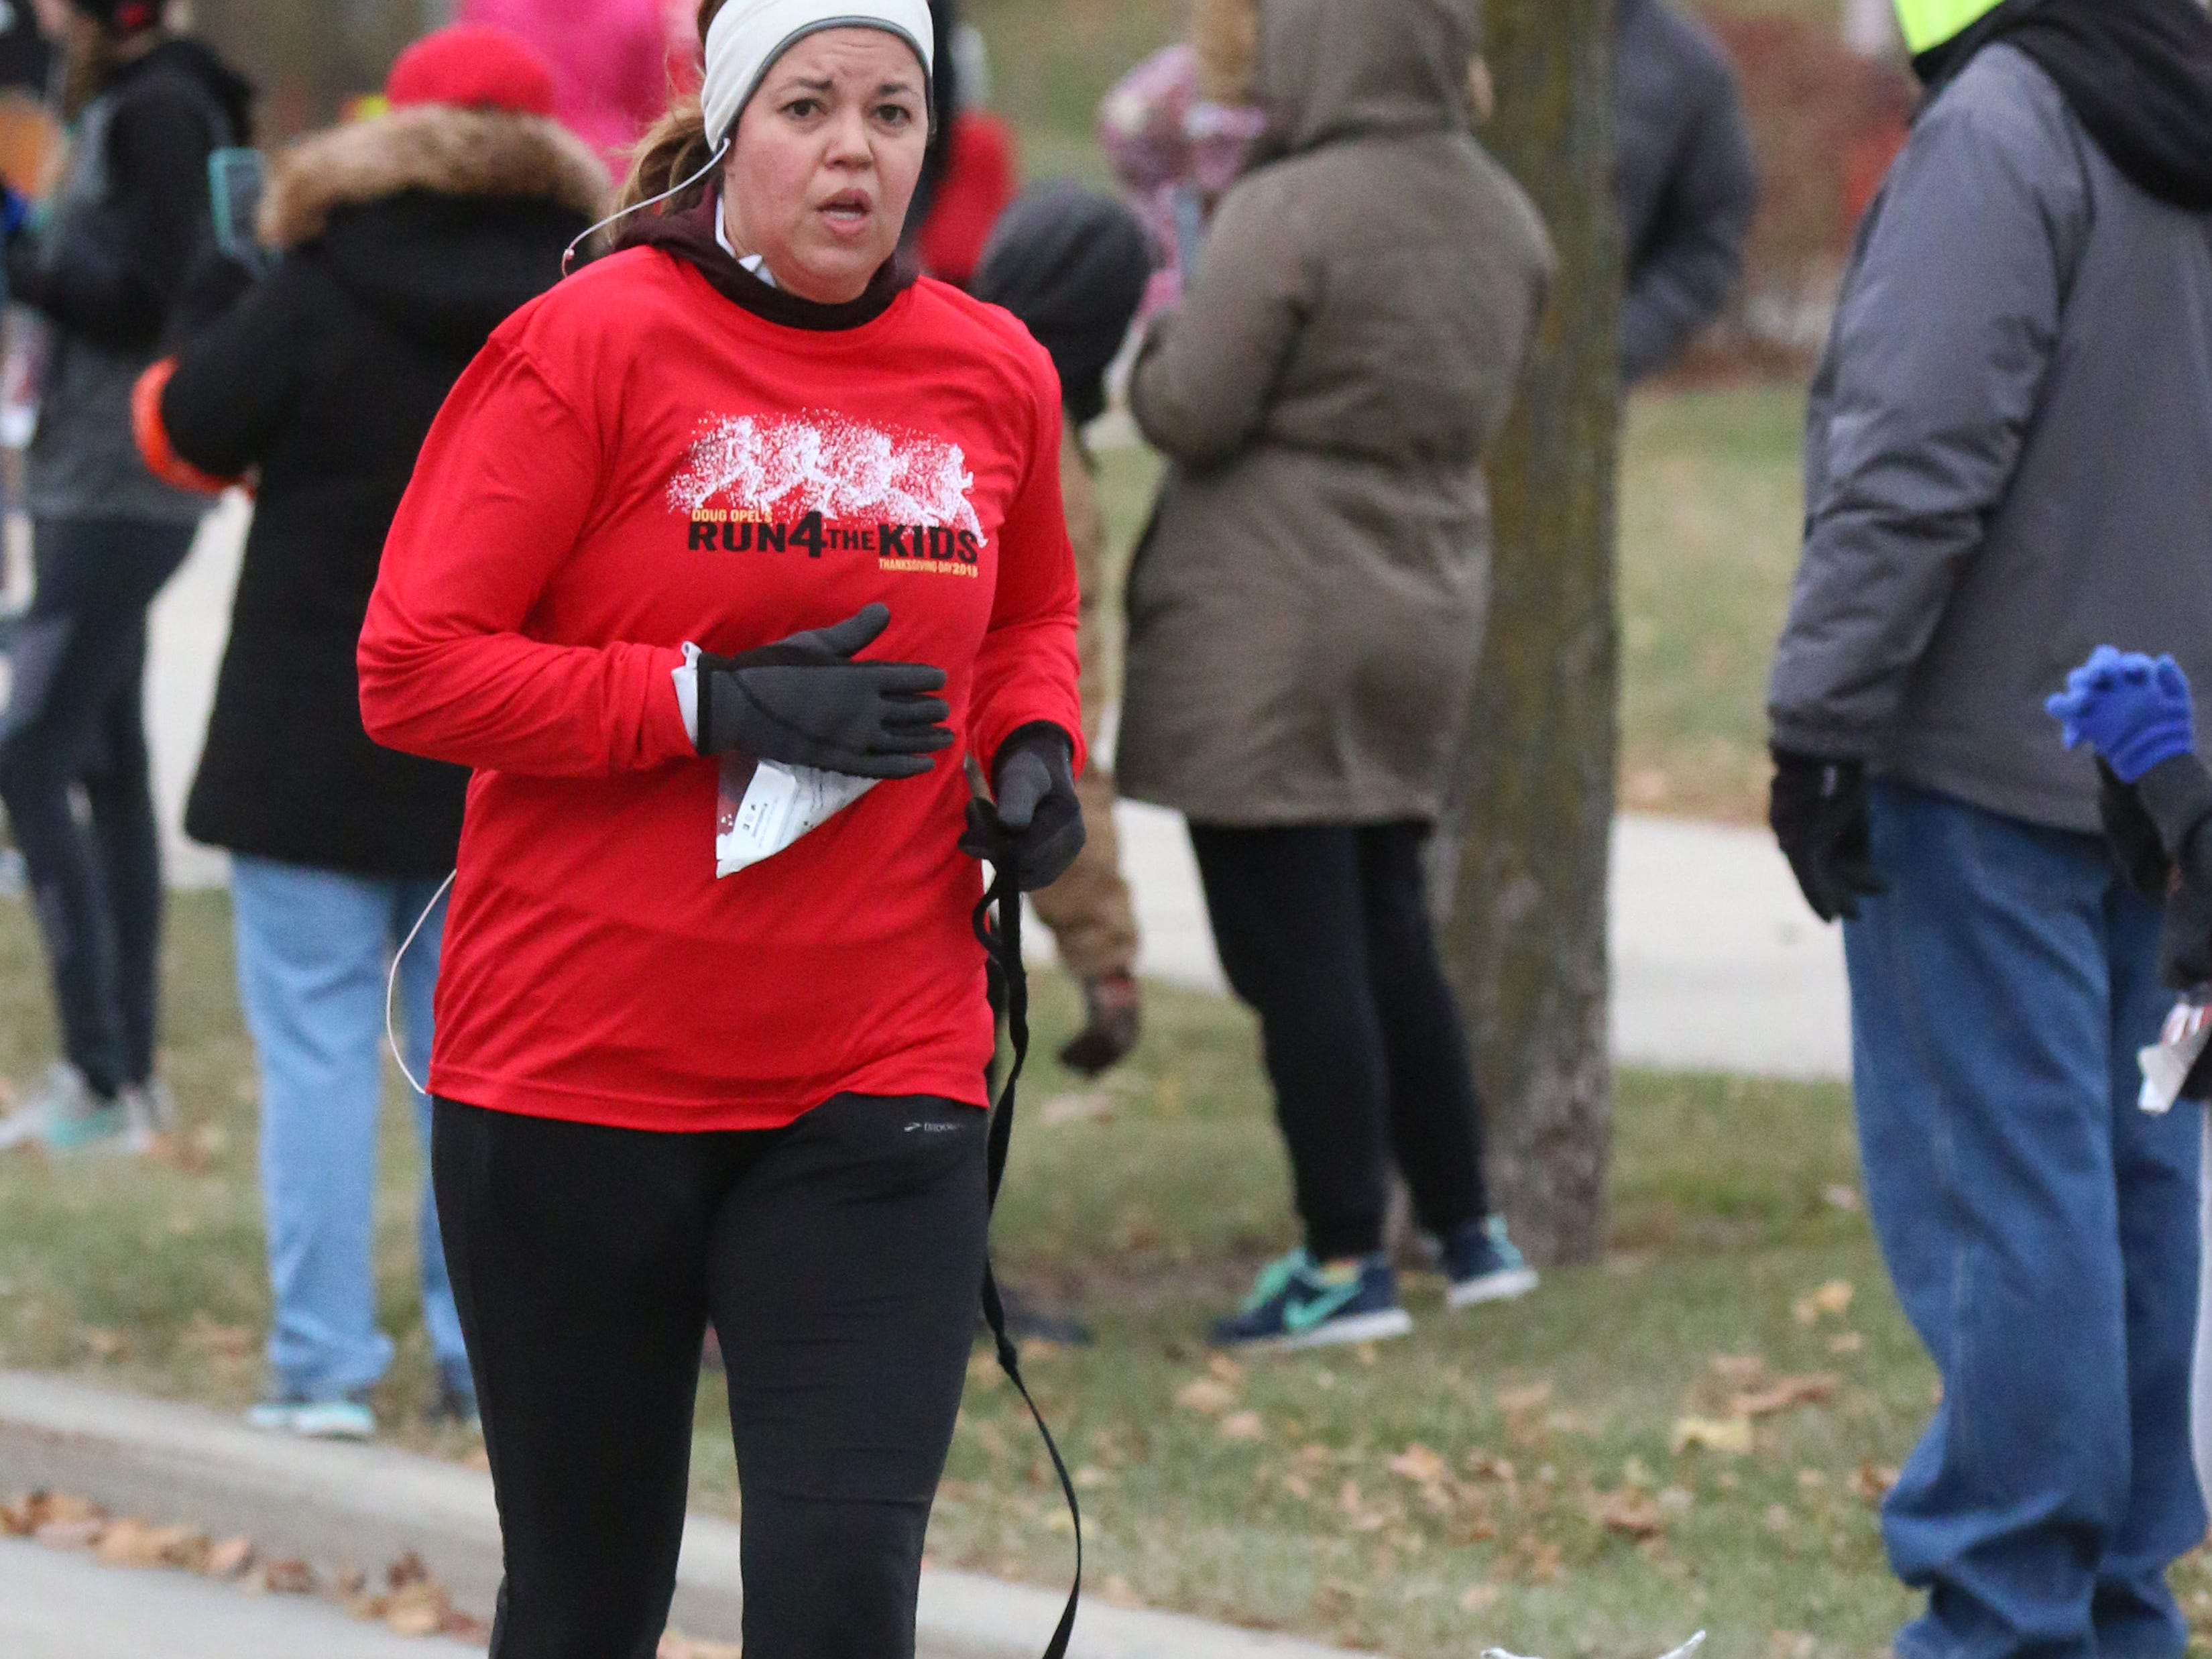 Carla Yancy of Sheboygan runs with her dog Finn during the Doug Opel Run for the Kids, Thursday, November 22, 2018, in Sheboygan, Wis.